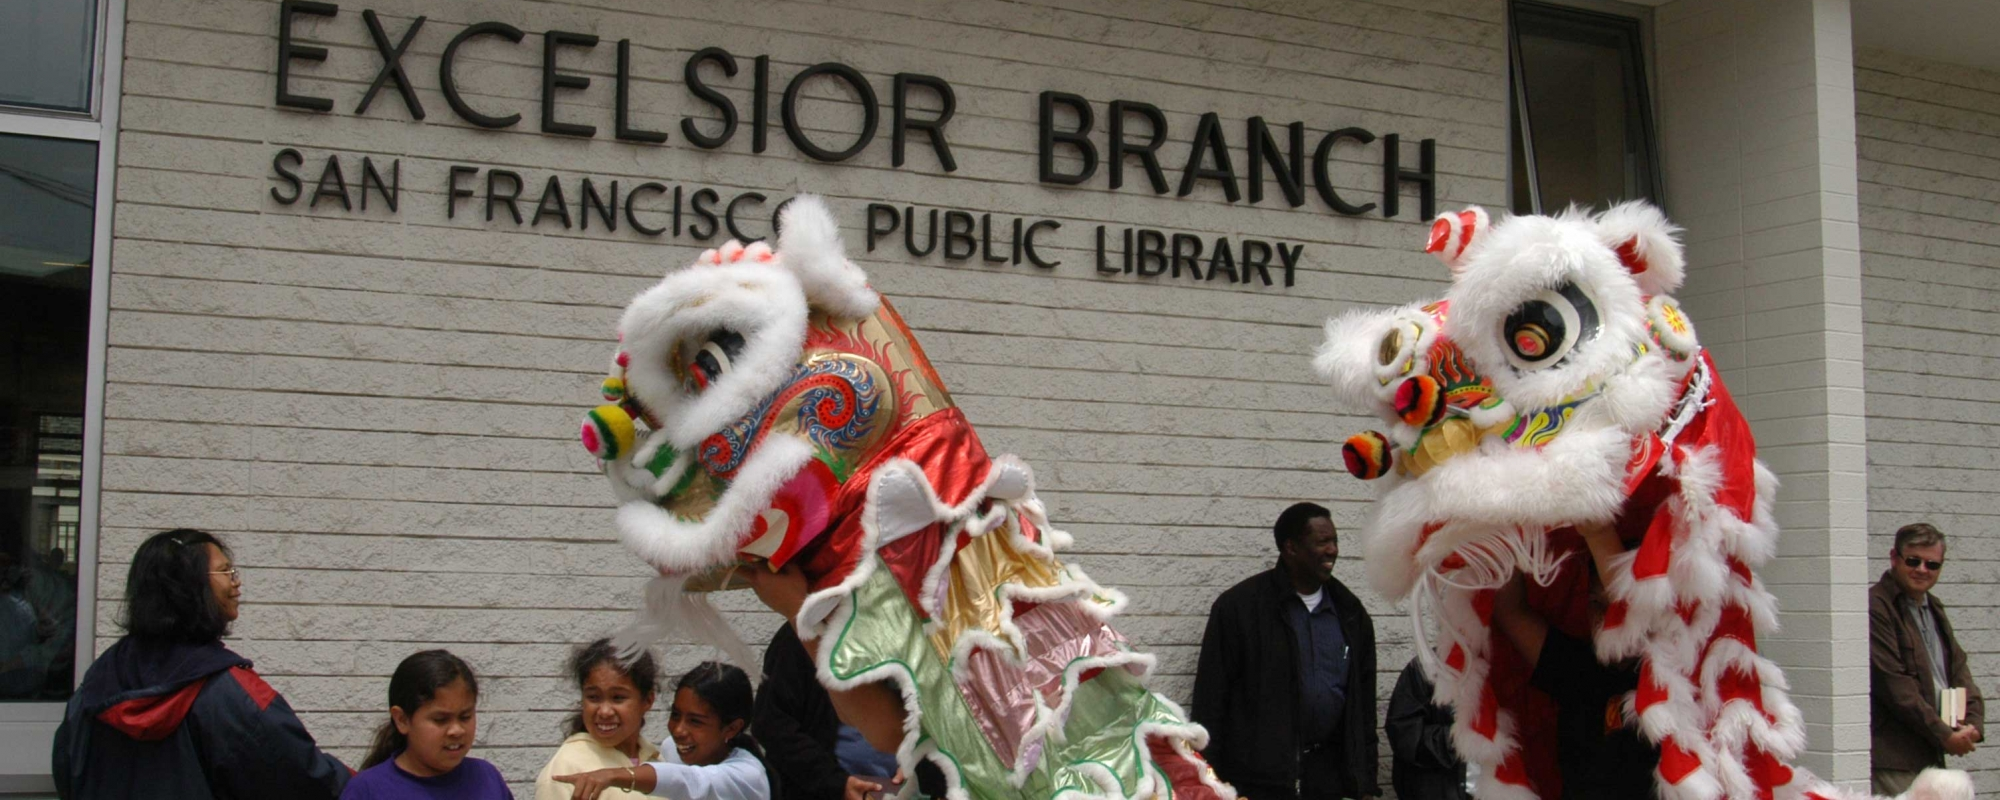 Excelsior Branch Library